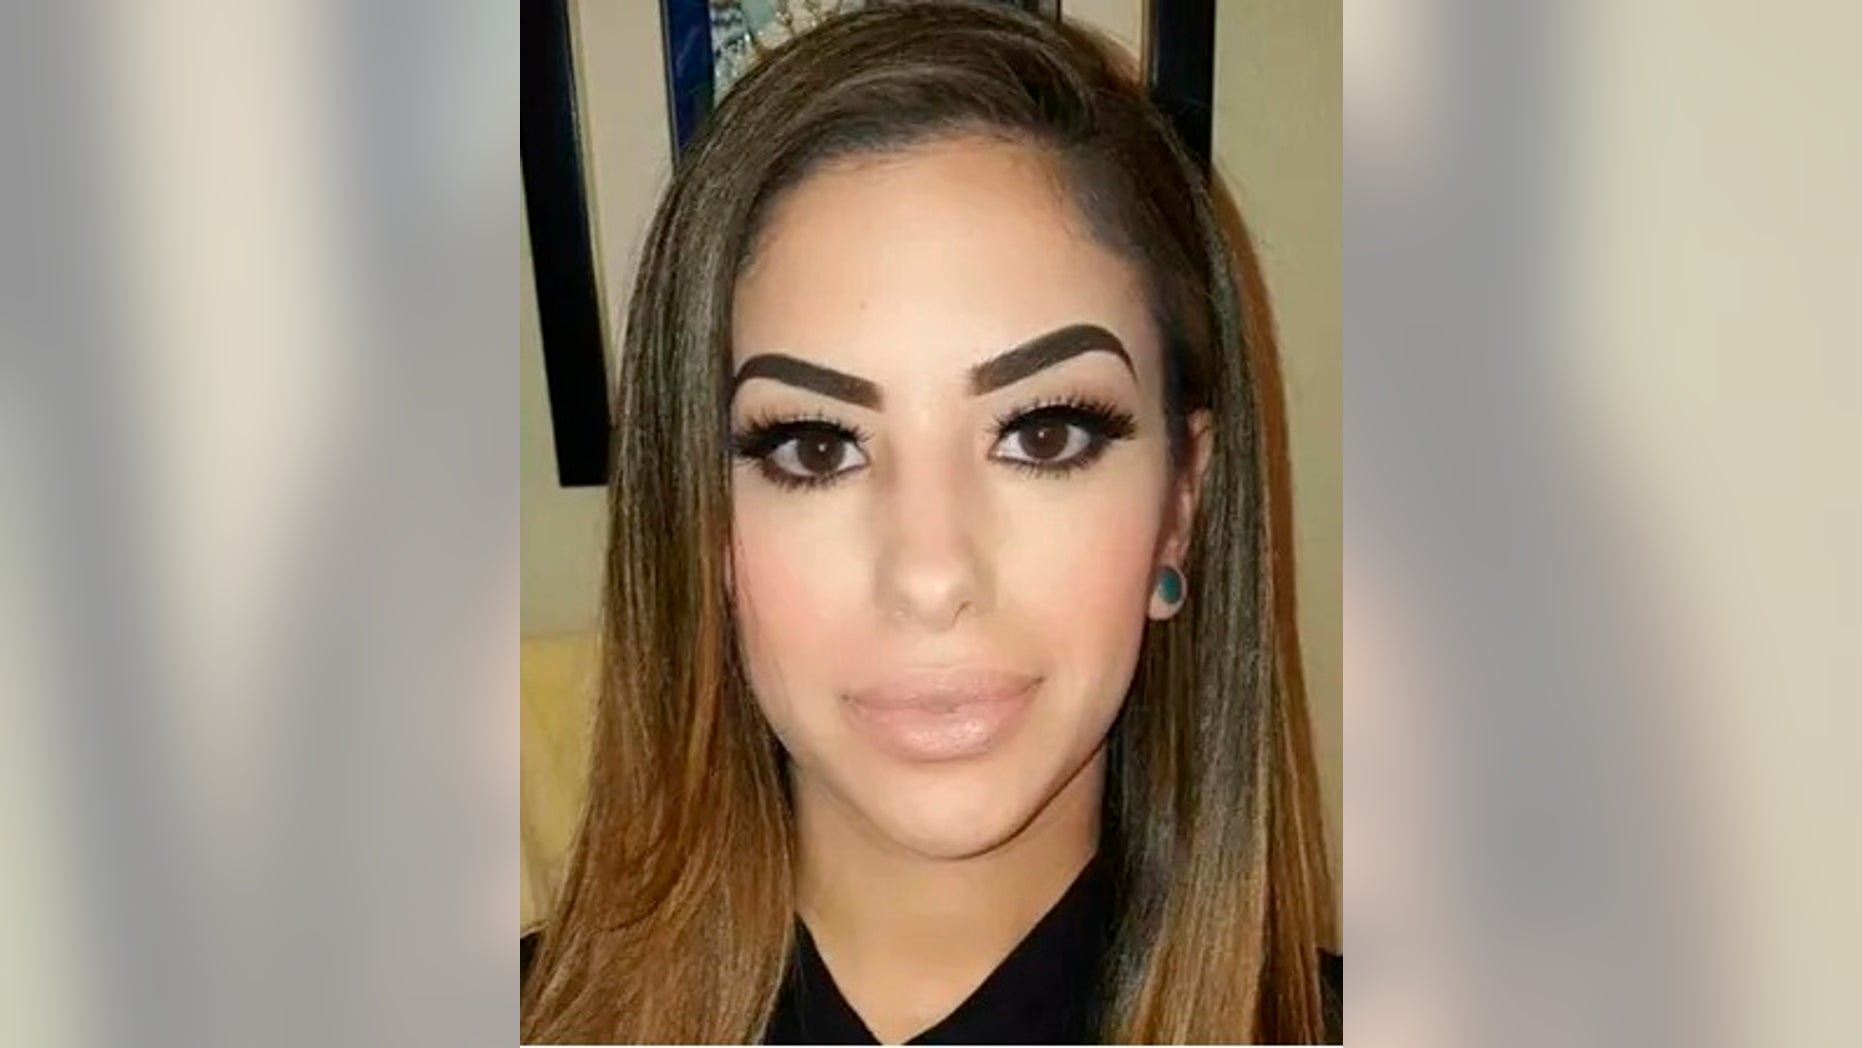 28-year-old Sara Zghoul was found dismembered in a car, according to police.